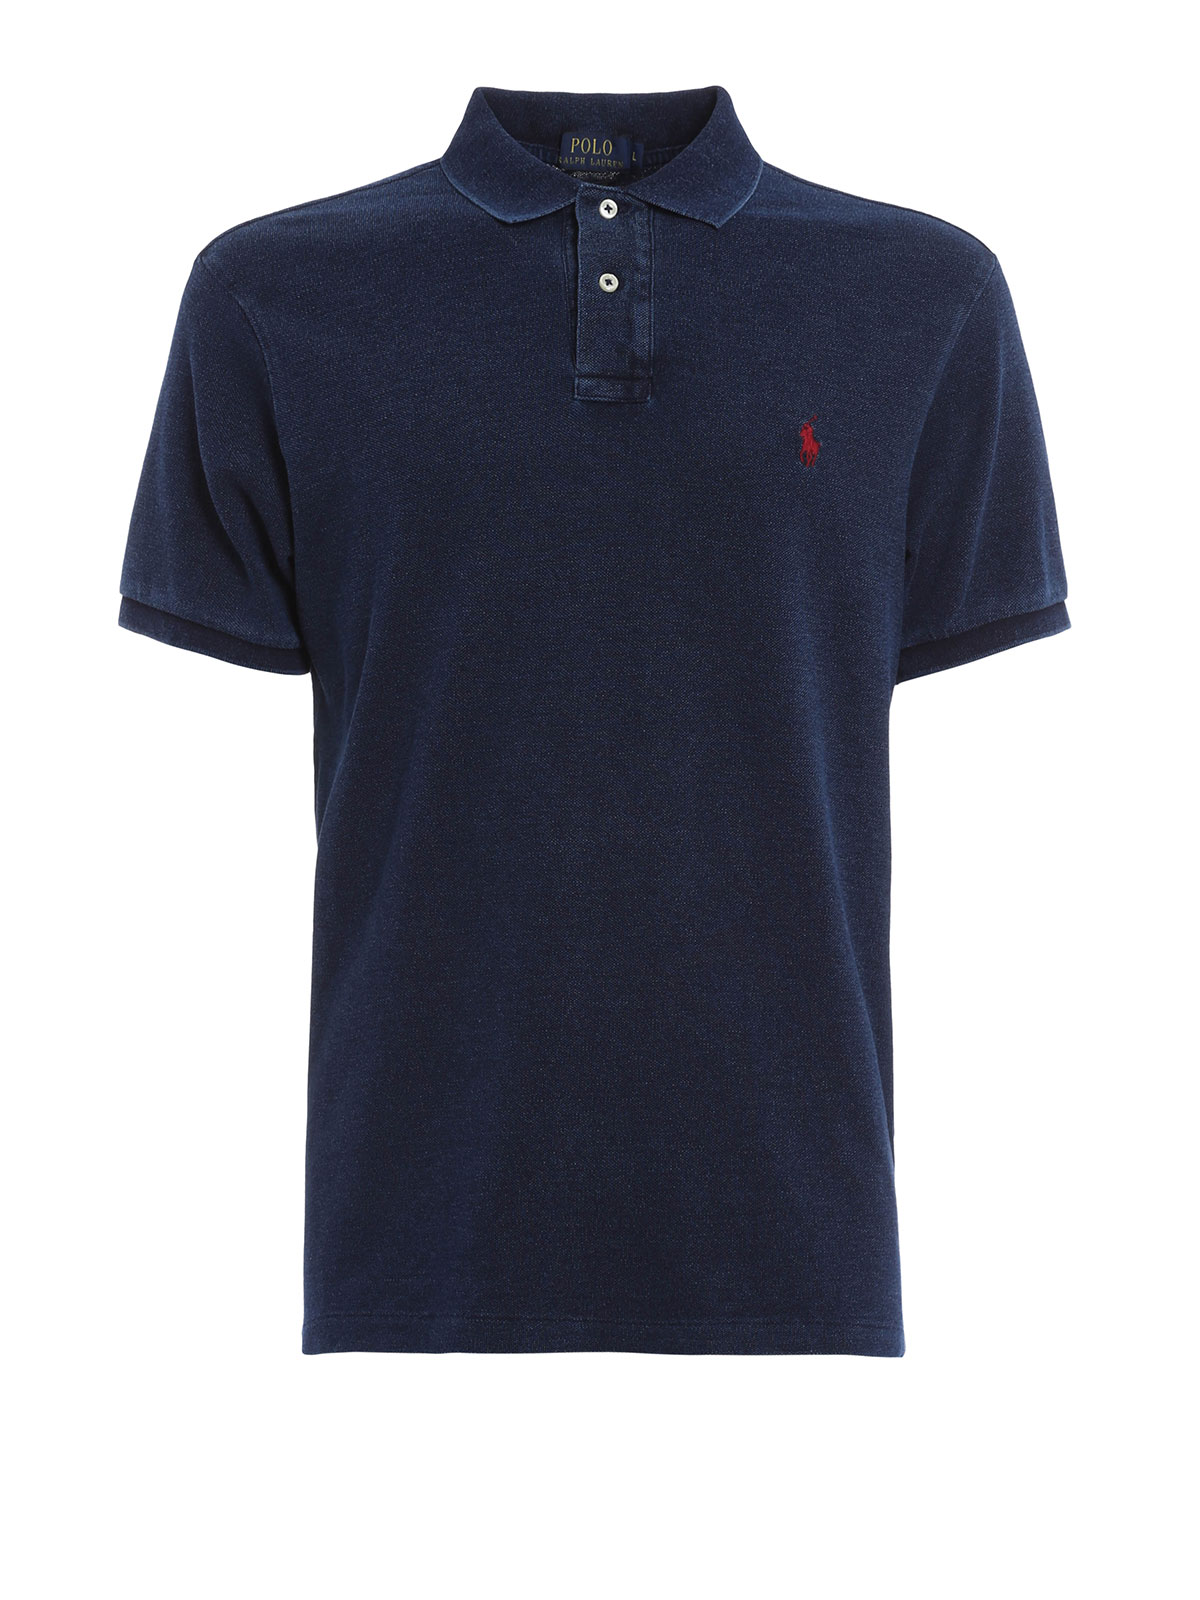 Cotton polo with logo by polo ralph lauren polo shirts for Ralph lauren logo shirt